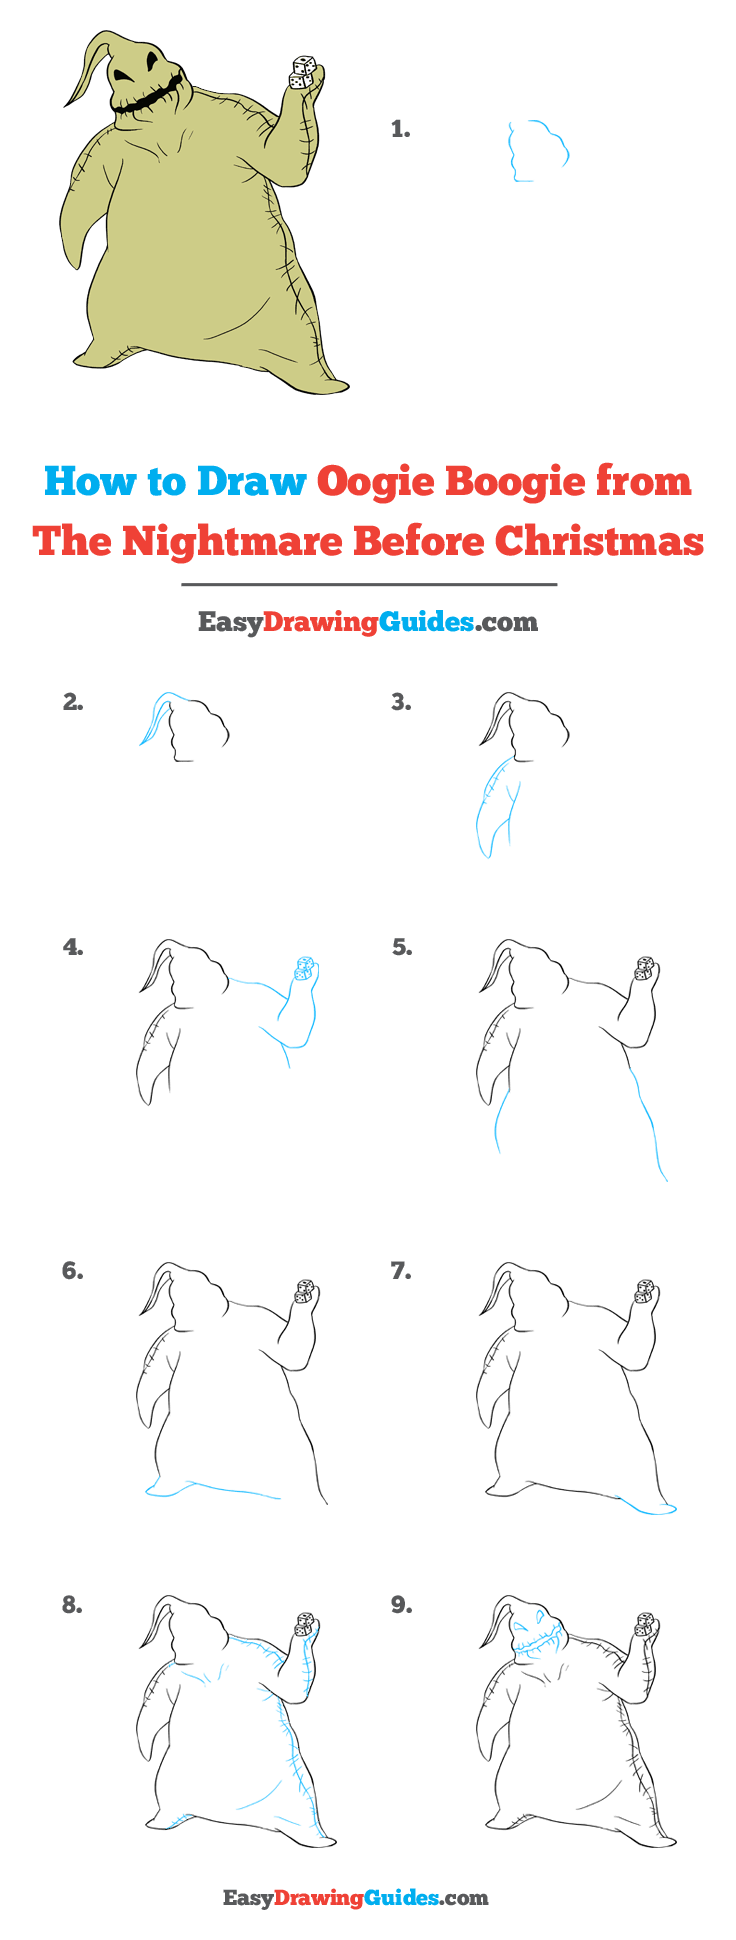 How To Draw Oogie Boogie From The Nightmare Before Christmas Really Easy Drawing Tutorial Oogie boogie says there's trouble close at hand you'd better pay attention now 'cause i'm the boogie man. how to draw oogie boogie from the